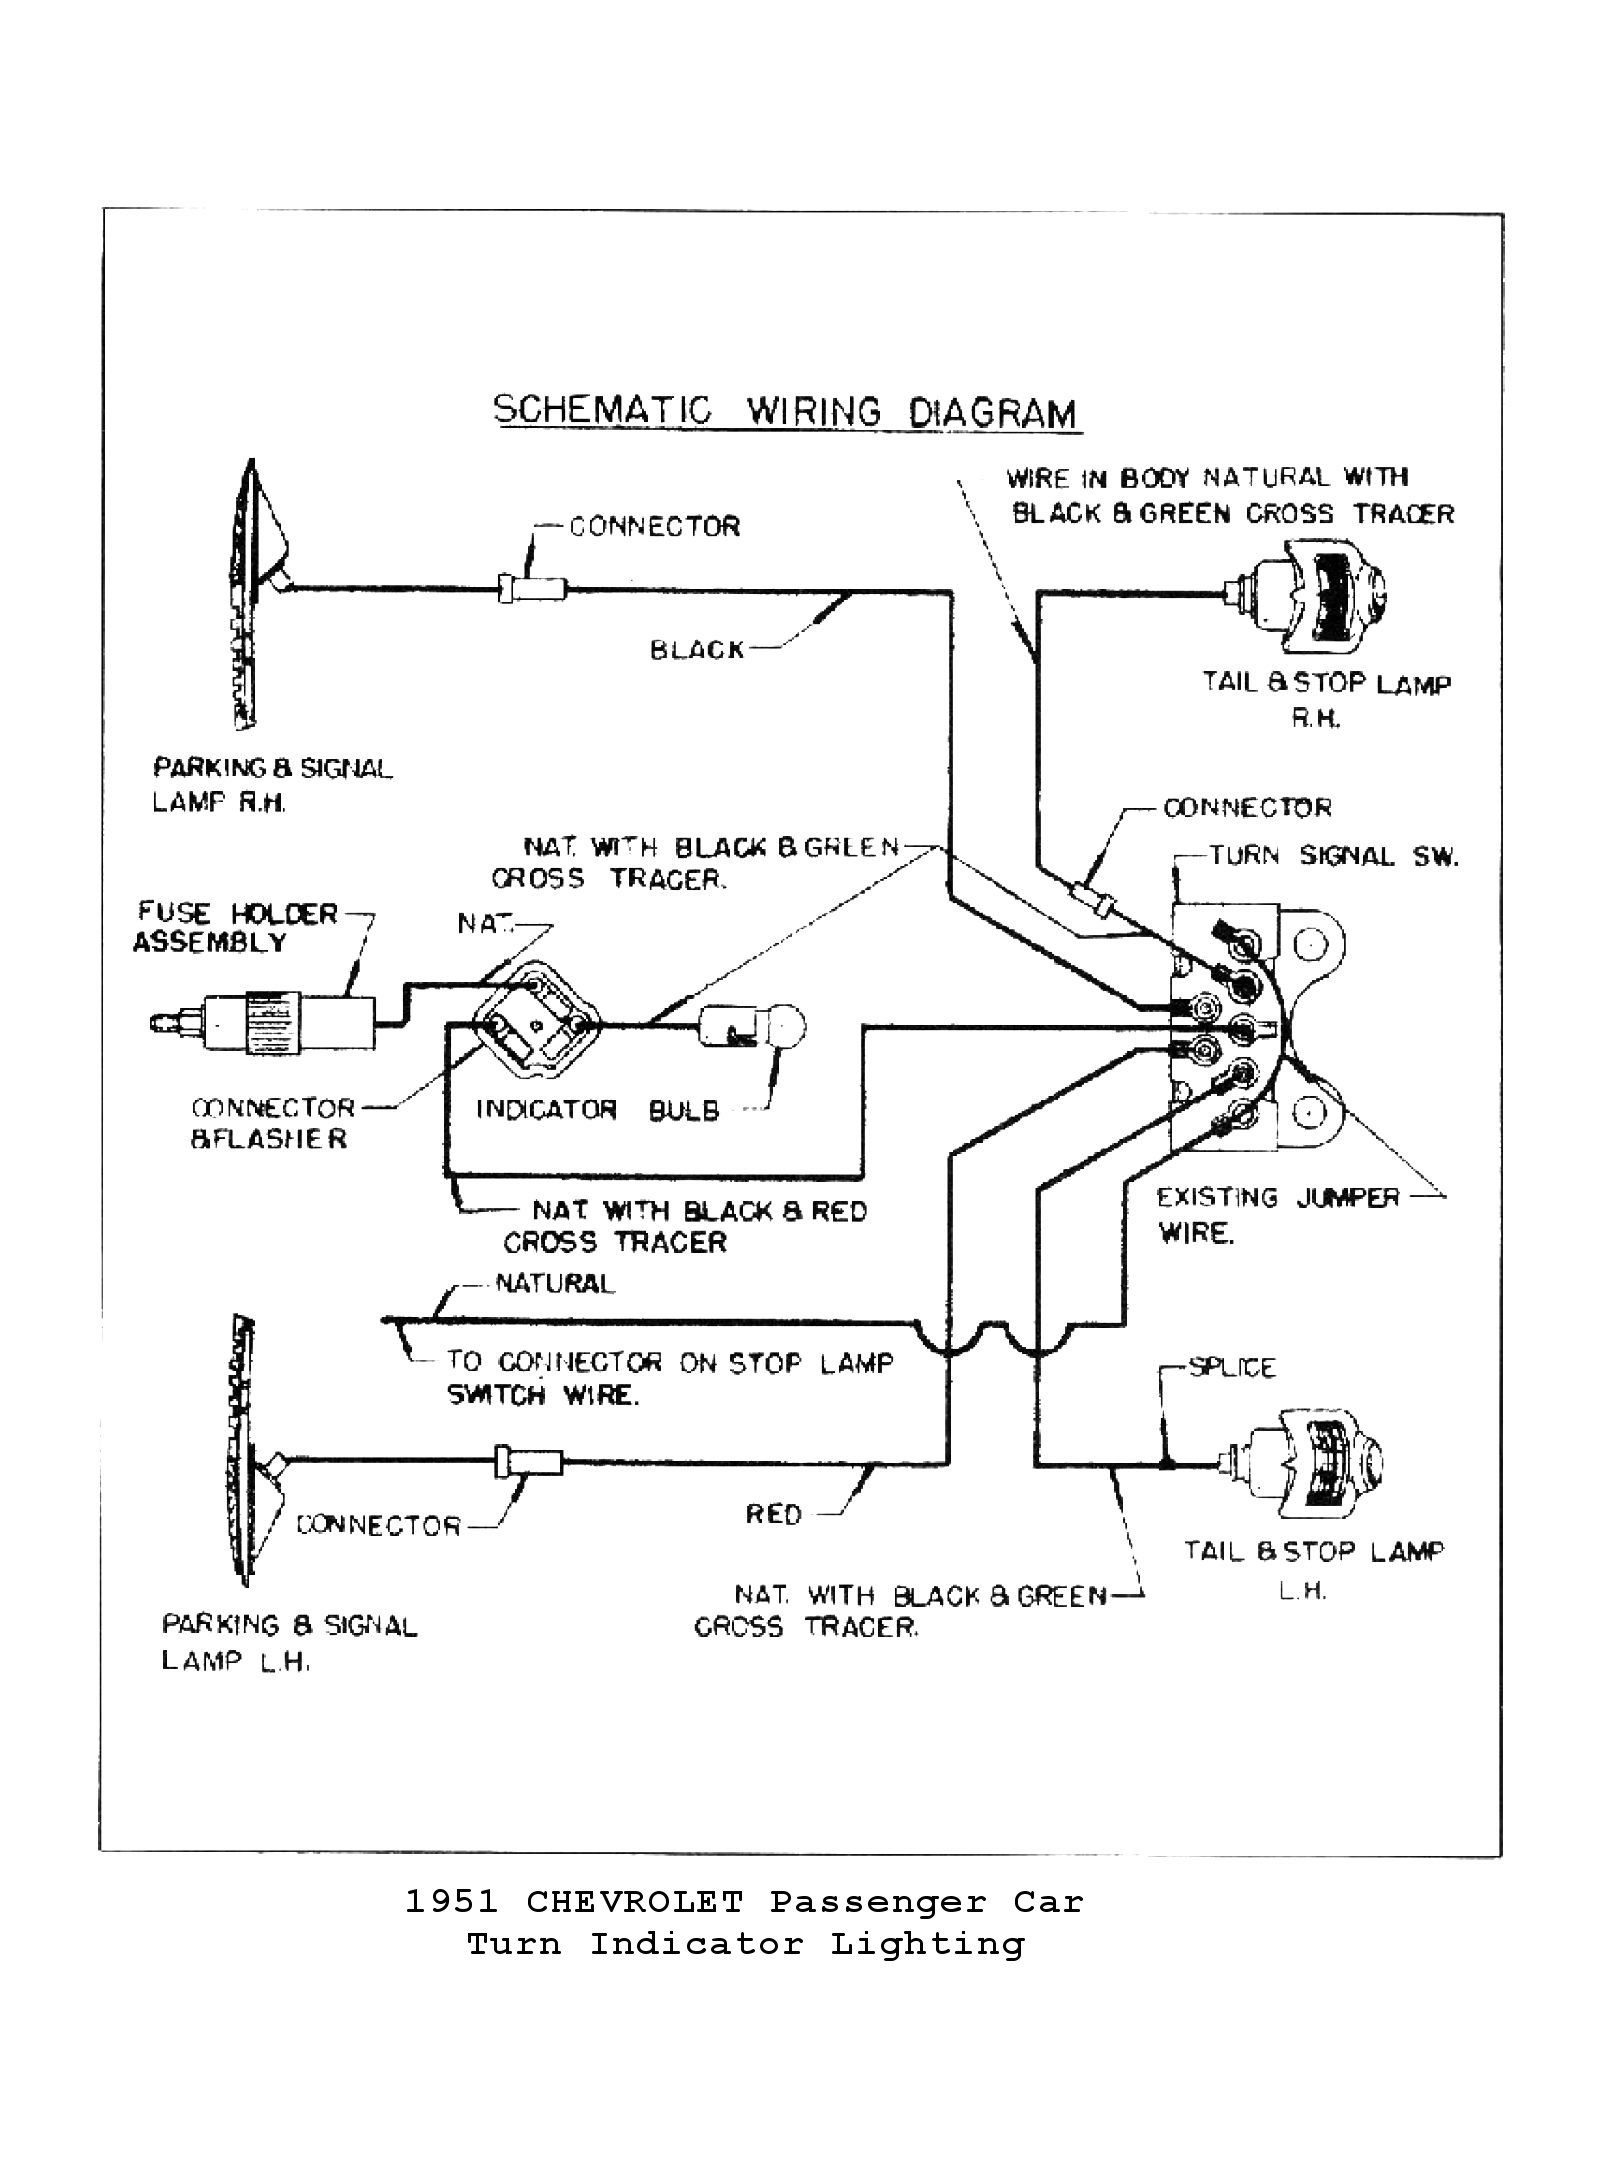 55 Chevy Radio Wiring Diagram Detailed Diagrams 2010 Malibu 1948 Chevrolet Schematics Steering Column Harness